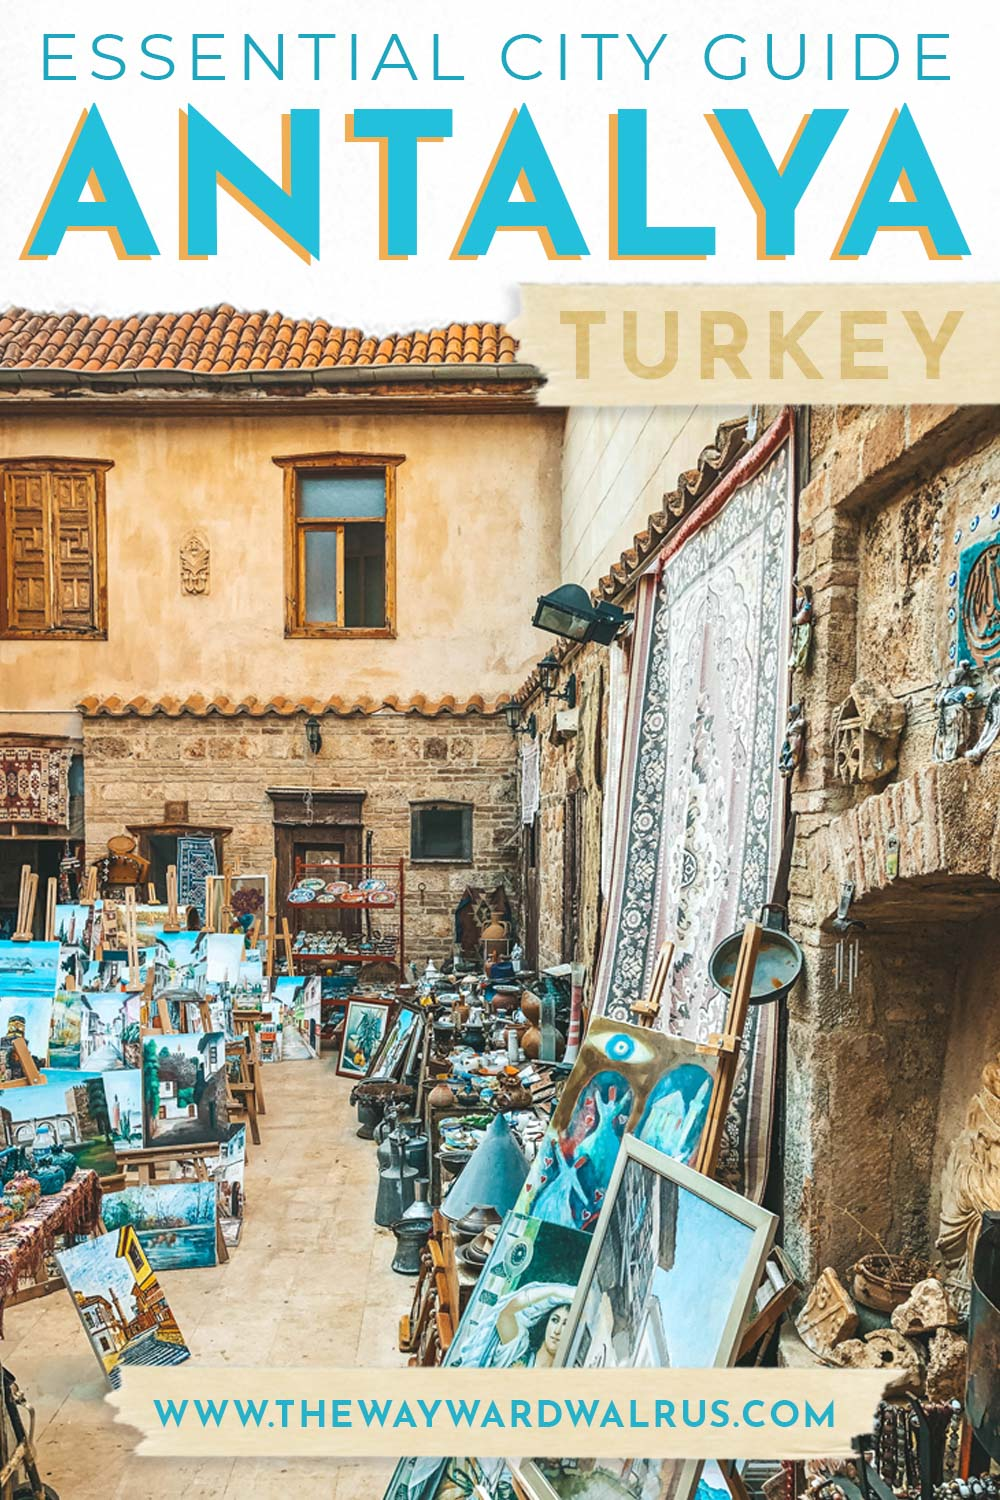 Everything you need to know about visiting Antalya, the gateway to Turkey's beautiful Turquoise Coast. Travel guide includes what area to stay in, where to eat and top things to do in Antalya. #TurquoiseCoast #TurkishRiviera #TheWaywardWalrus